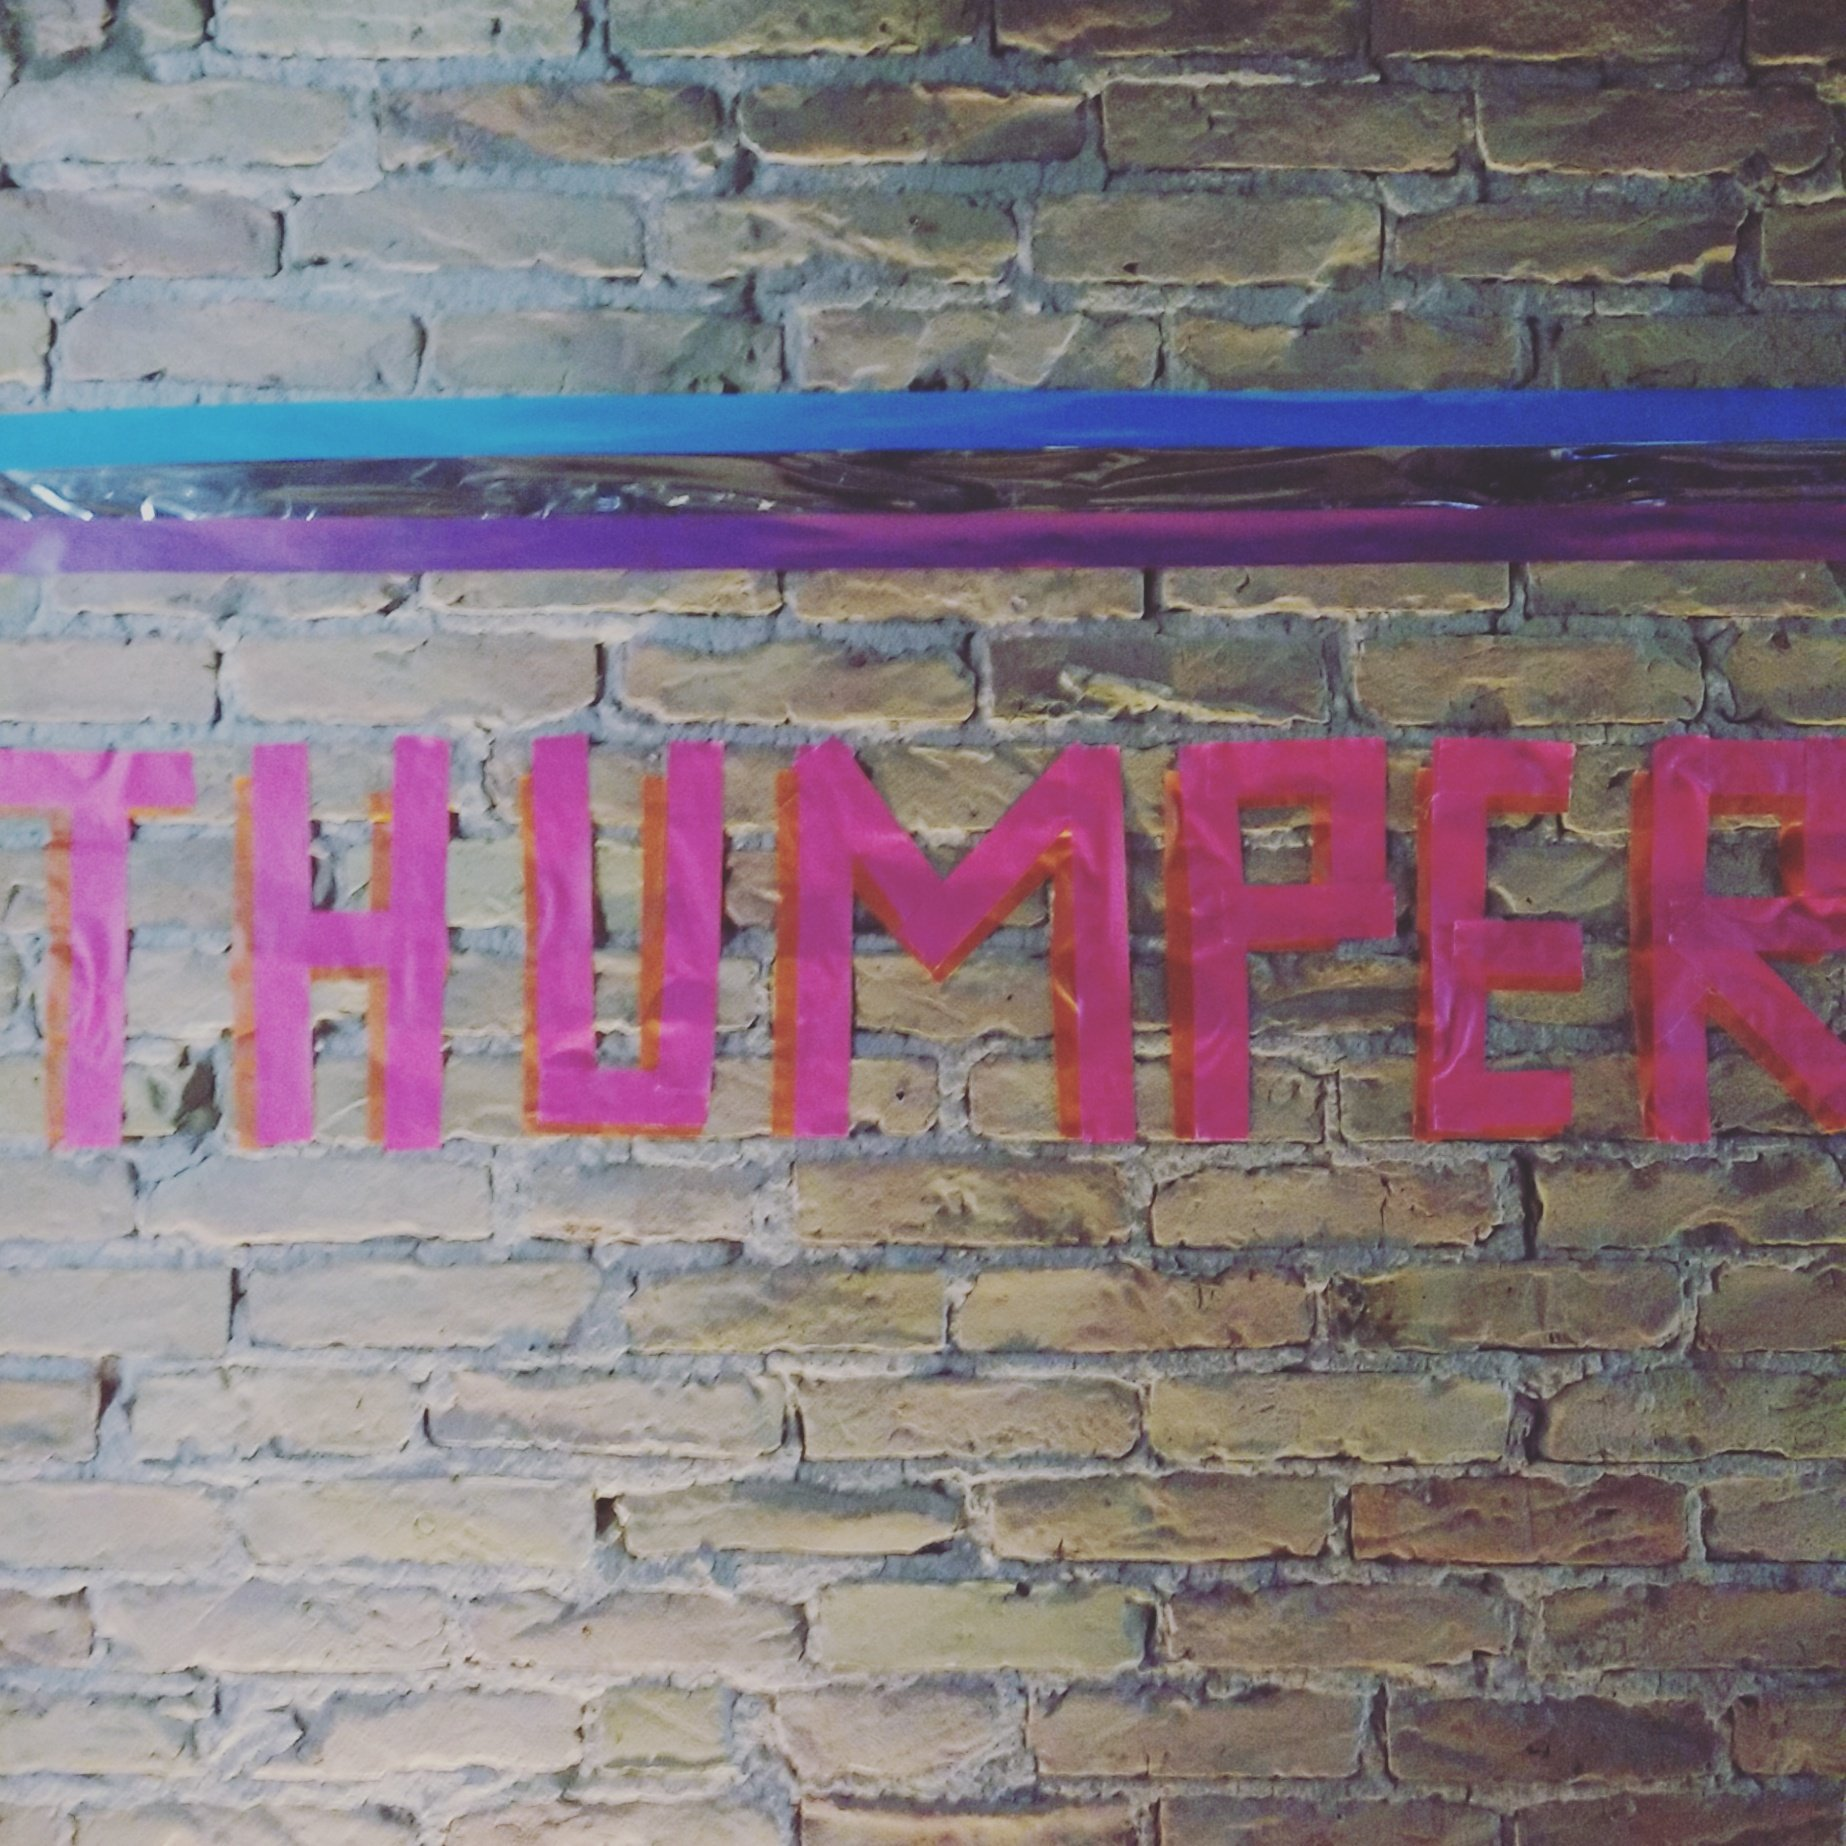 Thanks to @devolutionbln and Brian Gibson for the fantastic exhibition on the development history of @ThumperGame at #AMaze2017 https://t.co/Ci1vfLDJdI